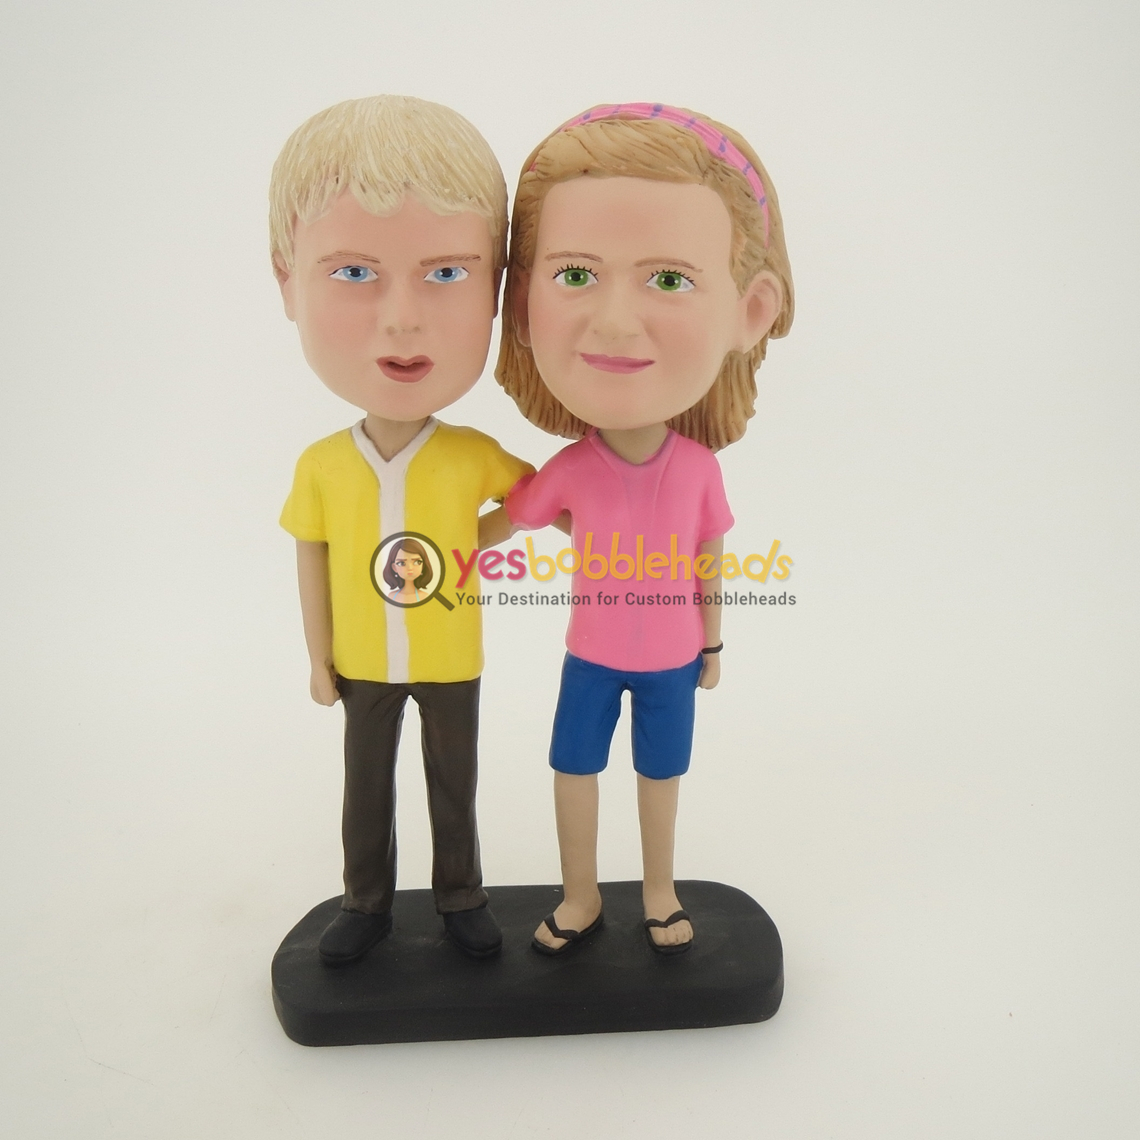 Picture of Custom Bobblehead Doll: Arms Behind Each Other Kids Couple